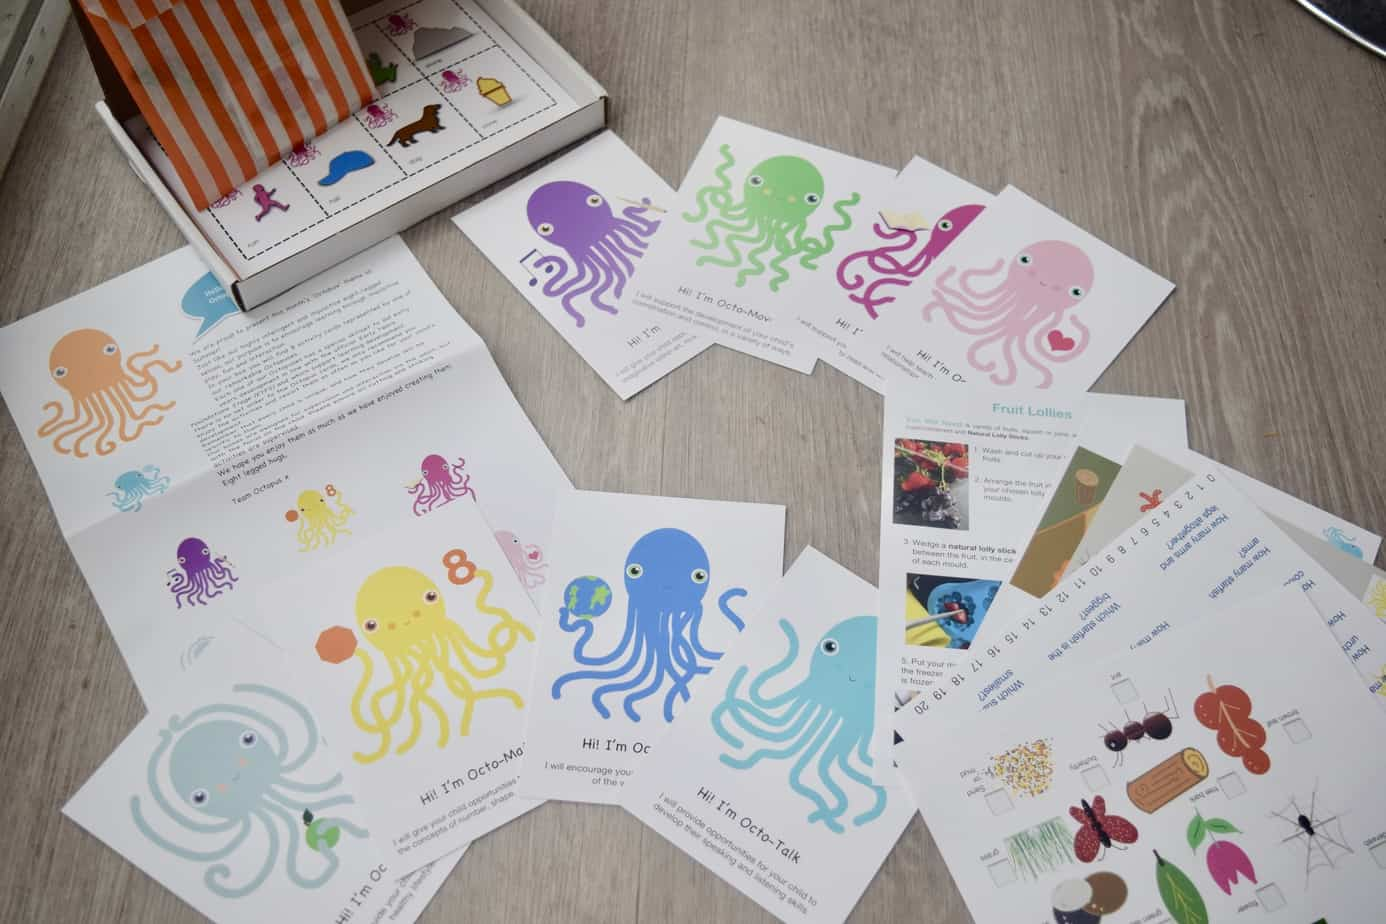 The contents of our octopus learning subscription box including octopus cards, creative items and work sheets